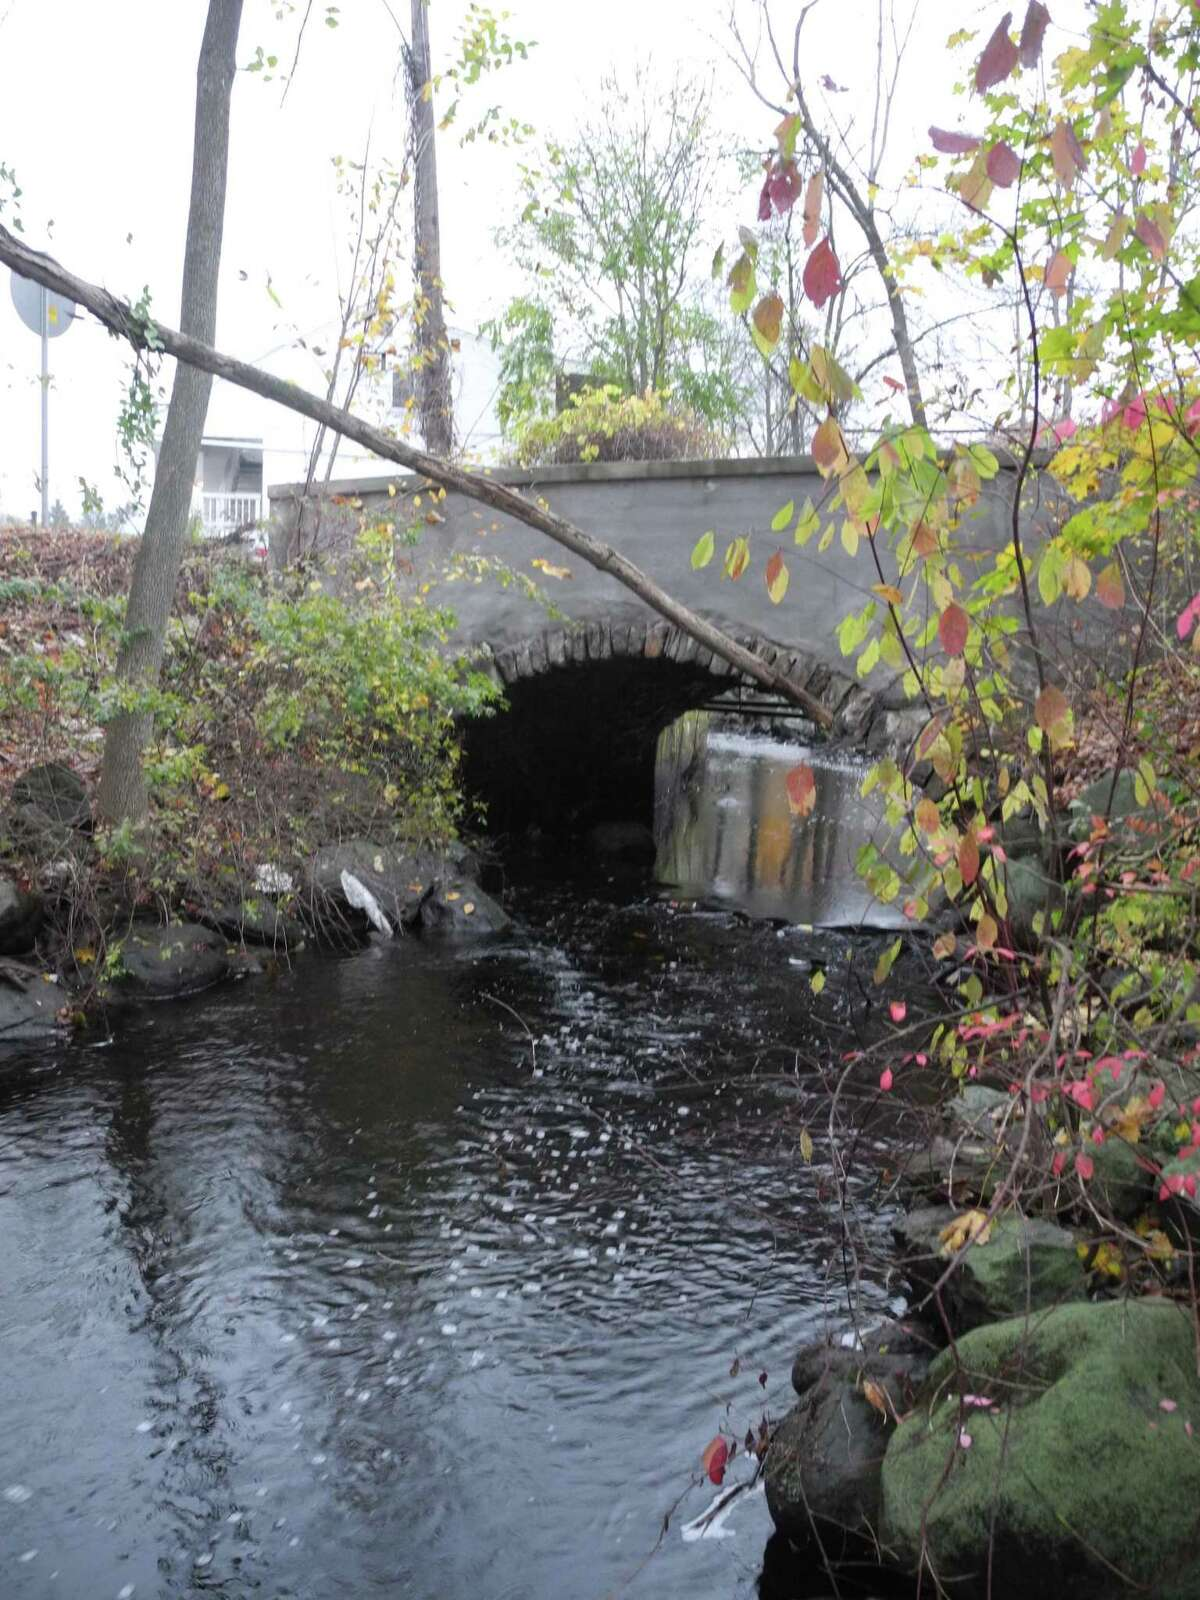 Depot Road bridge, which crosses the Norwalk River providing access to and from the Branchvillle Train Station, is closed permanently.